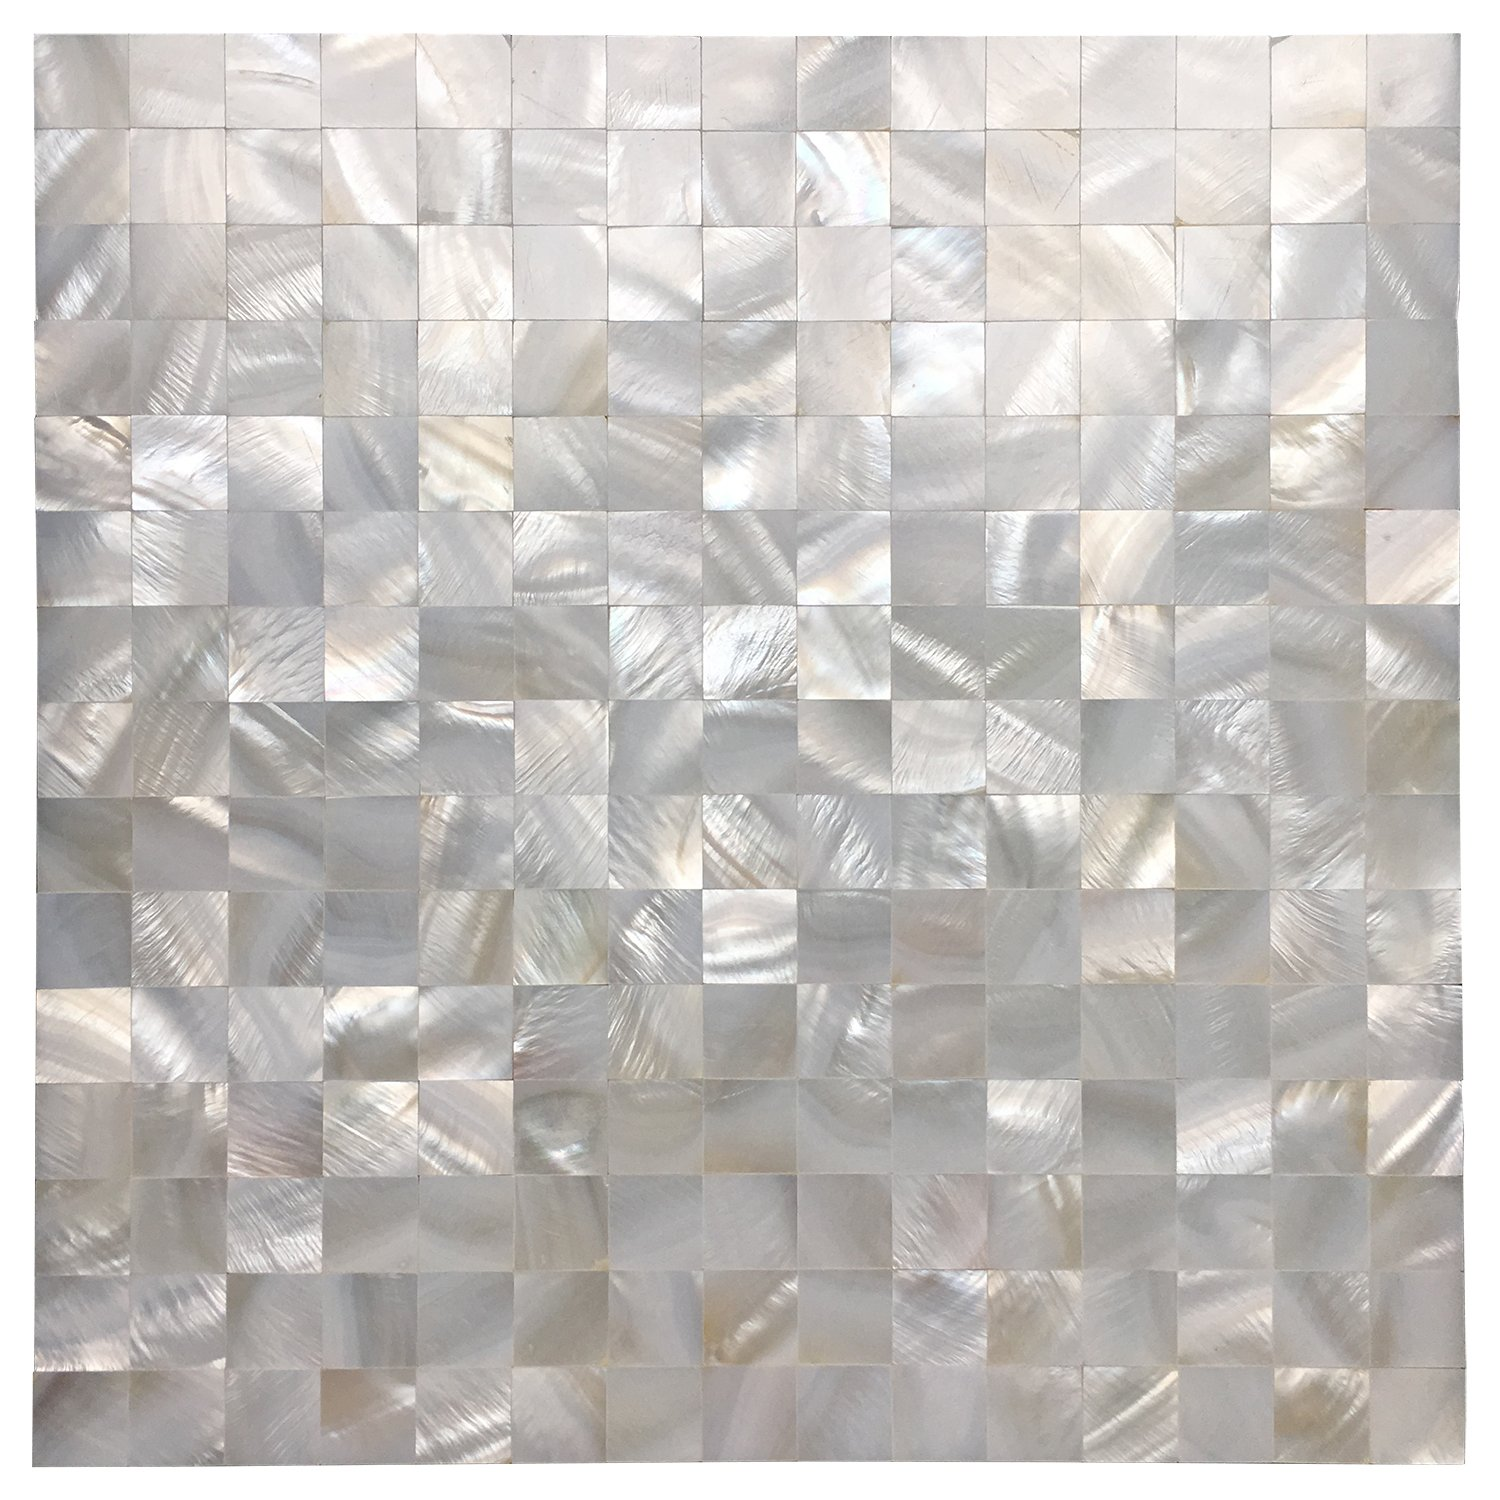 Art3d Peel and Stick Mother of Pearl Shell Mosaic Tile for Kitchen Backsplashes, 12'' x 12'' White (6 Pack) by Art3d